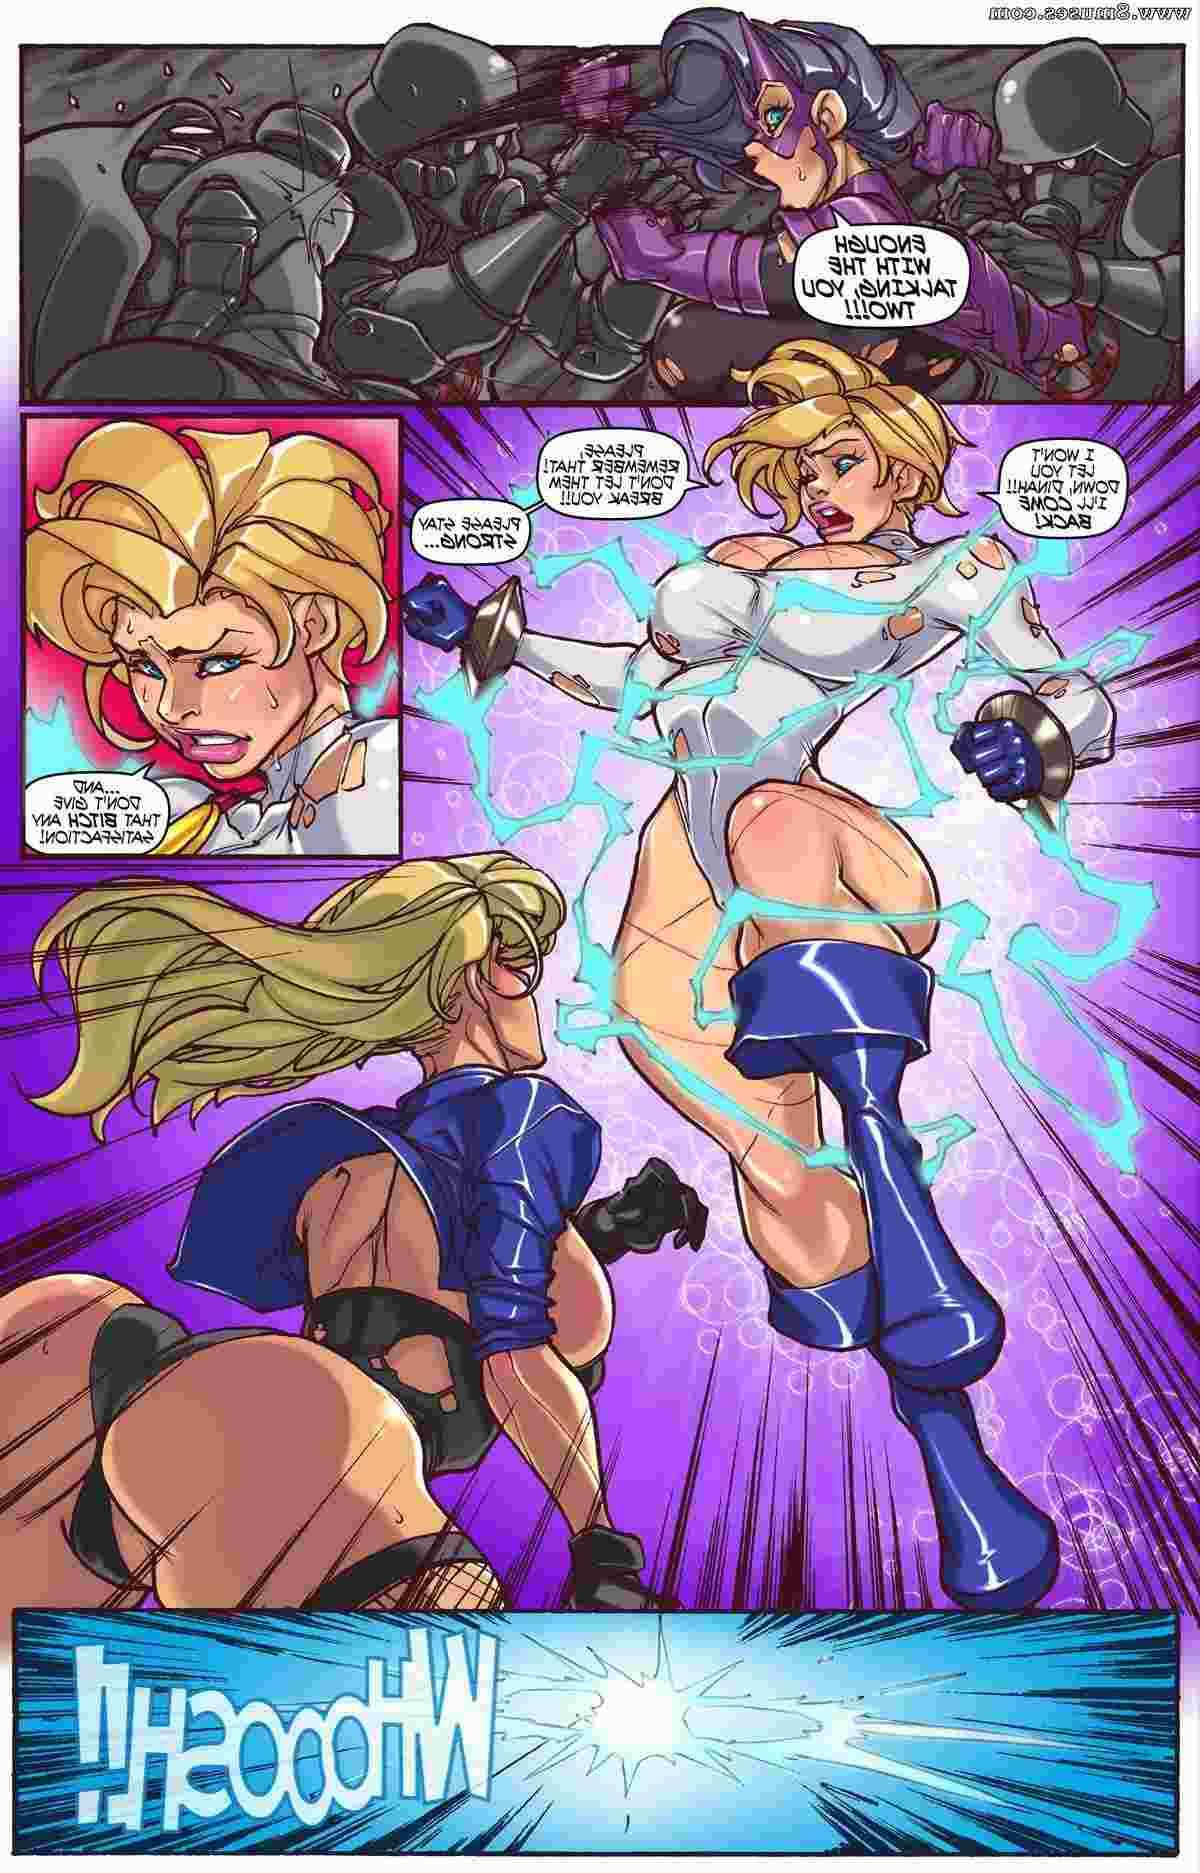 Sluttish-Comics/Power-and-Thunder-Another-Worlds Power_and_Thunder_-_Another_Worlds__8muses_-_Sex_and_Porn_Comics_7.jpg